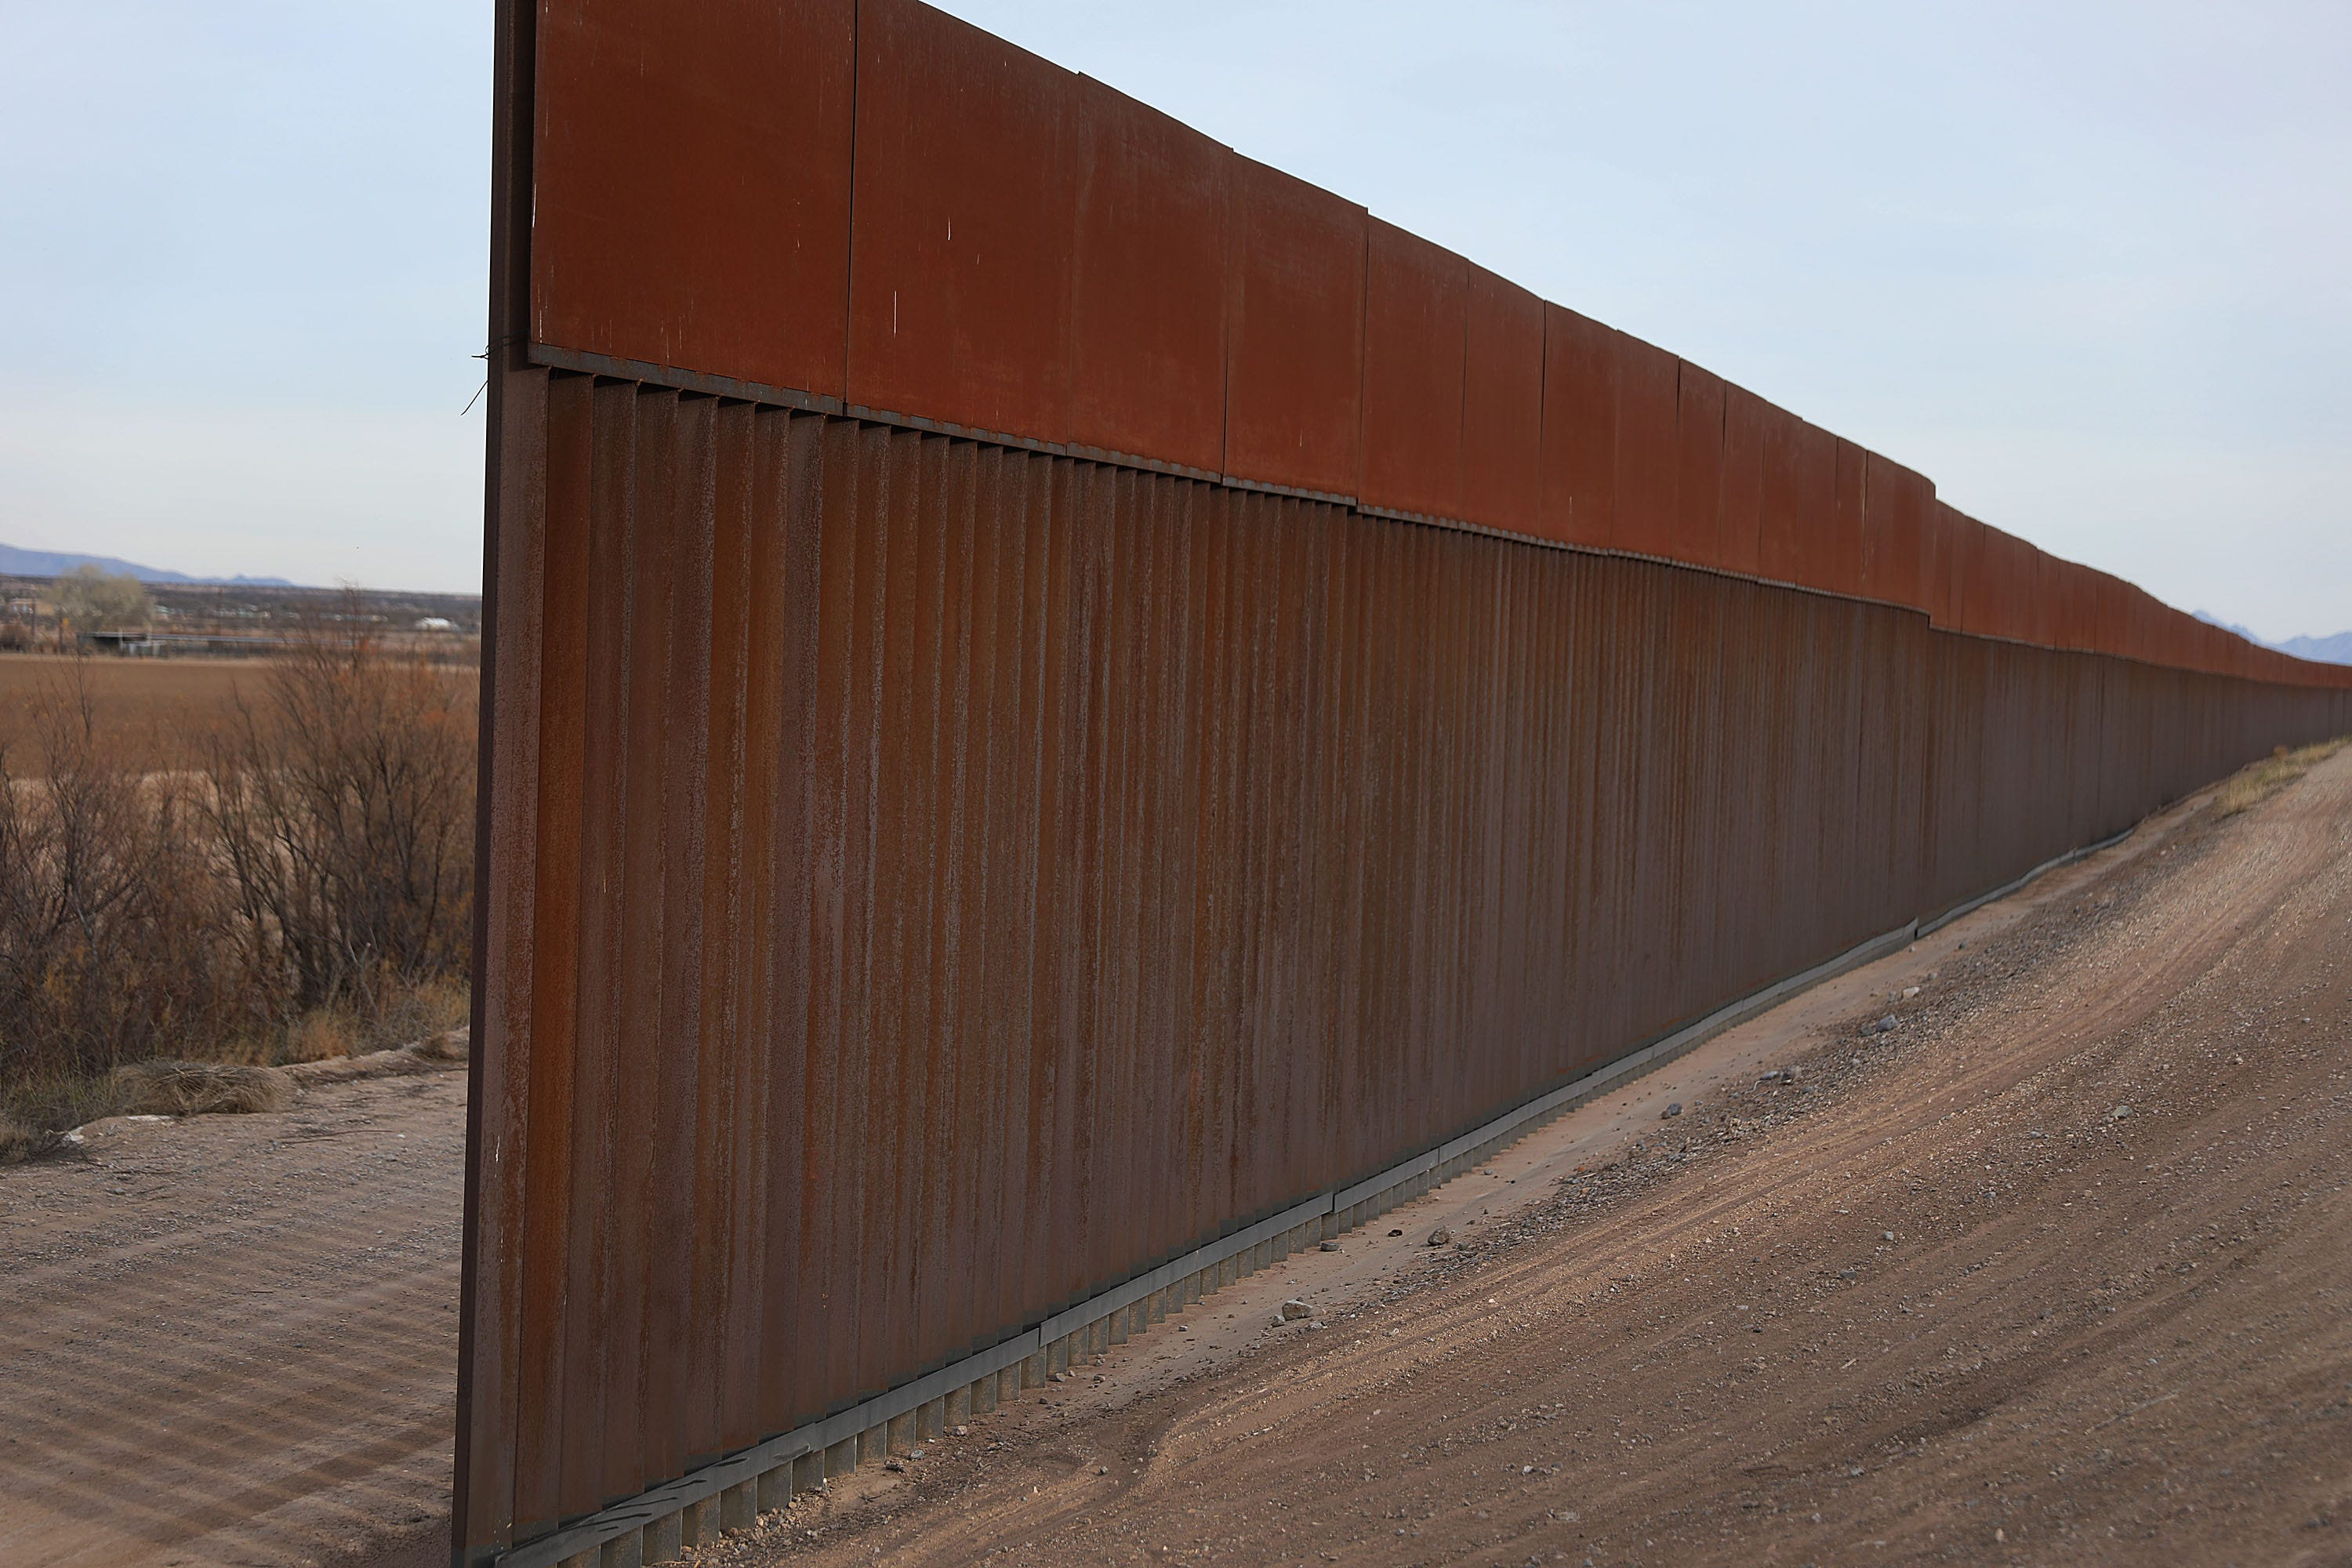 usatoday.com - Jason Sattler, Opinion columnist - 5 reasons Trump may want a shutdown that have nothing to do with a wall